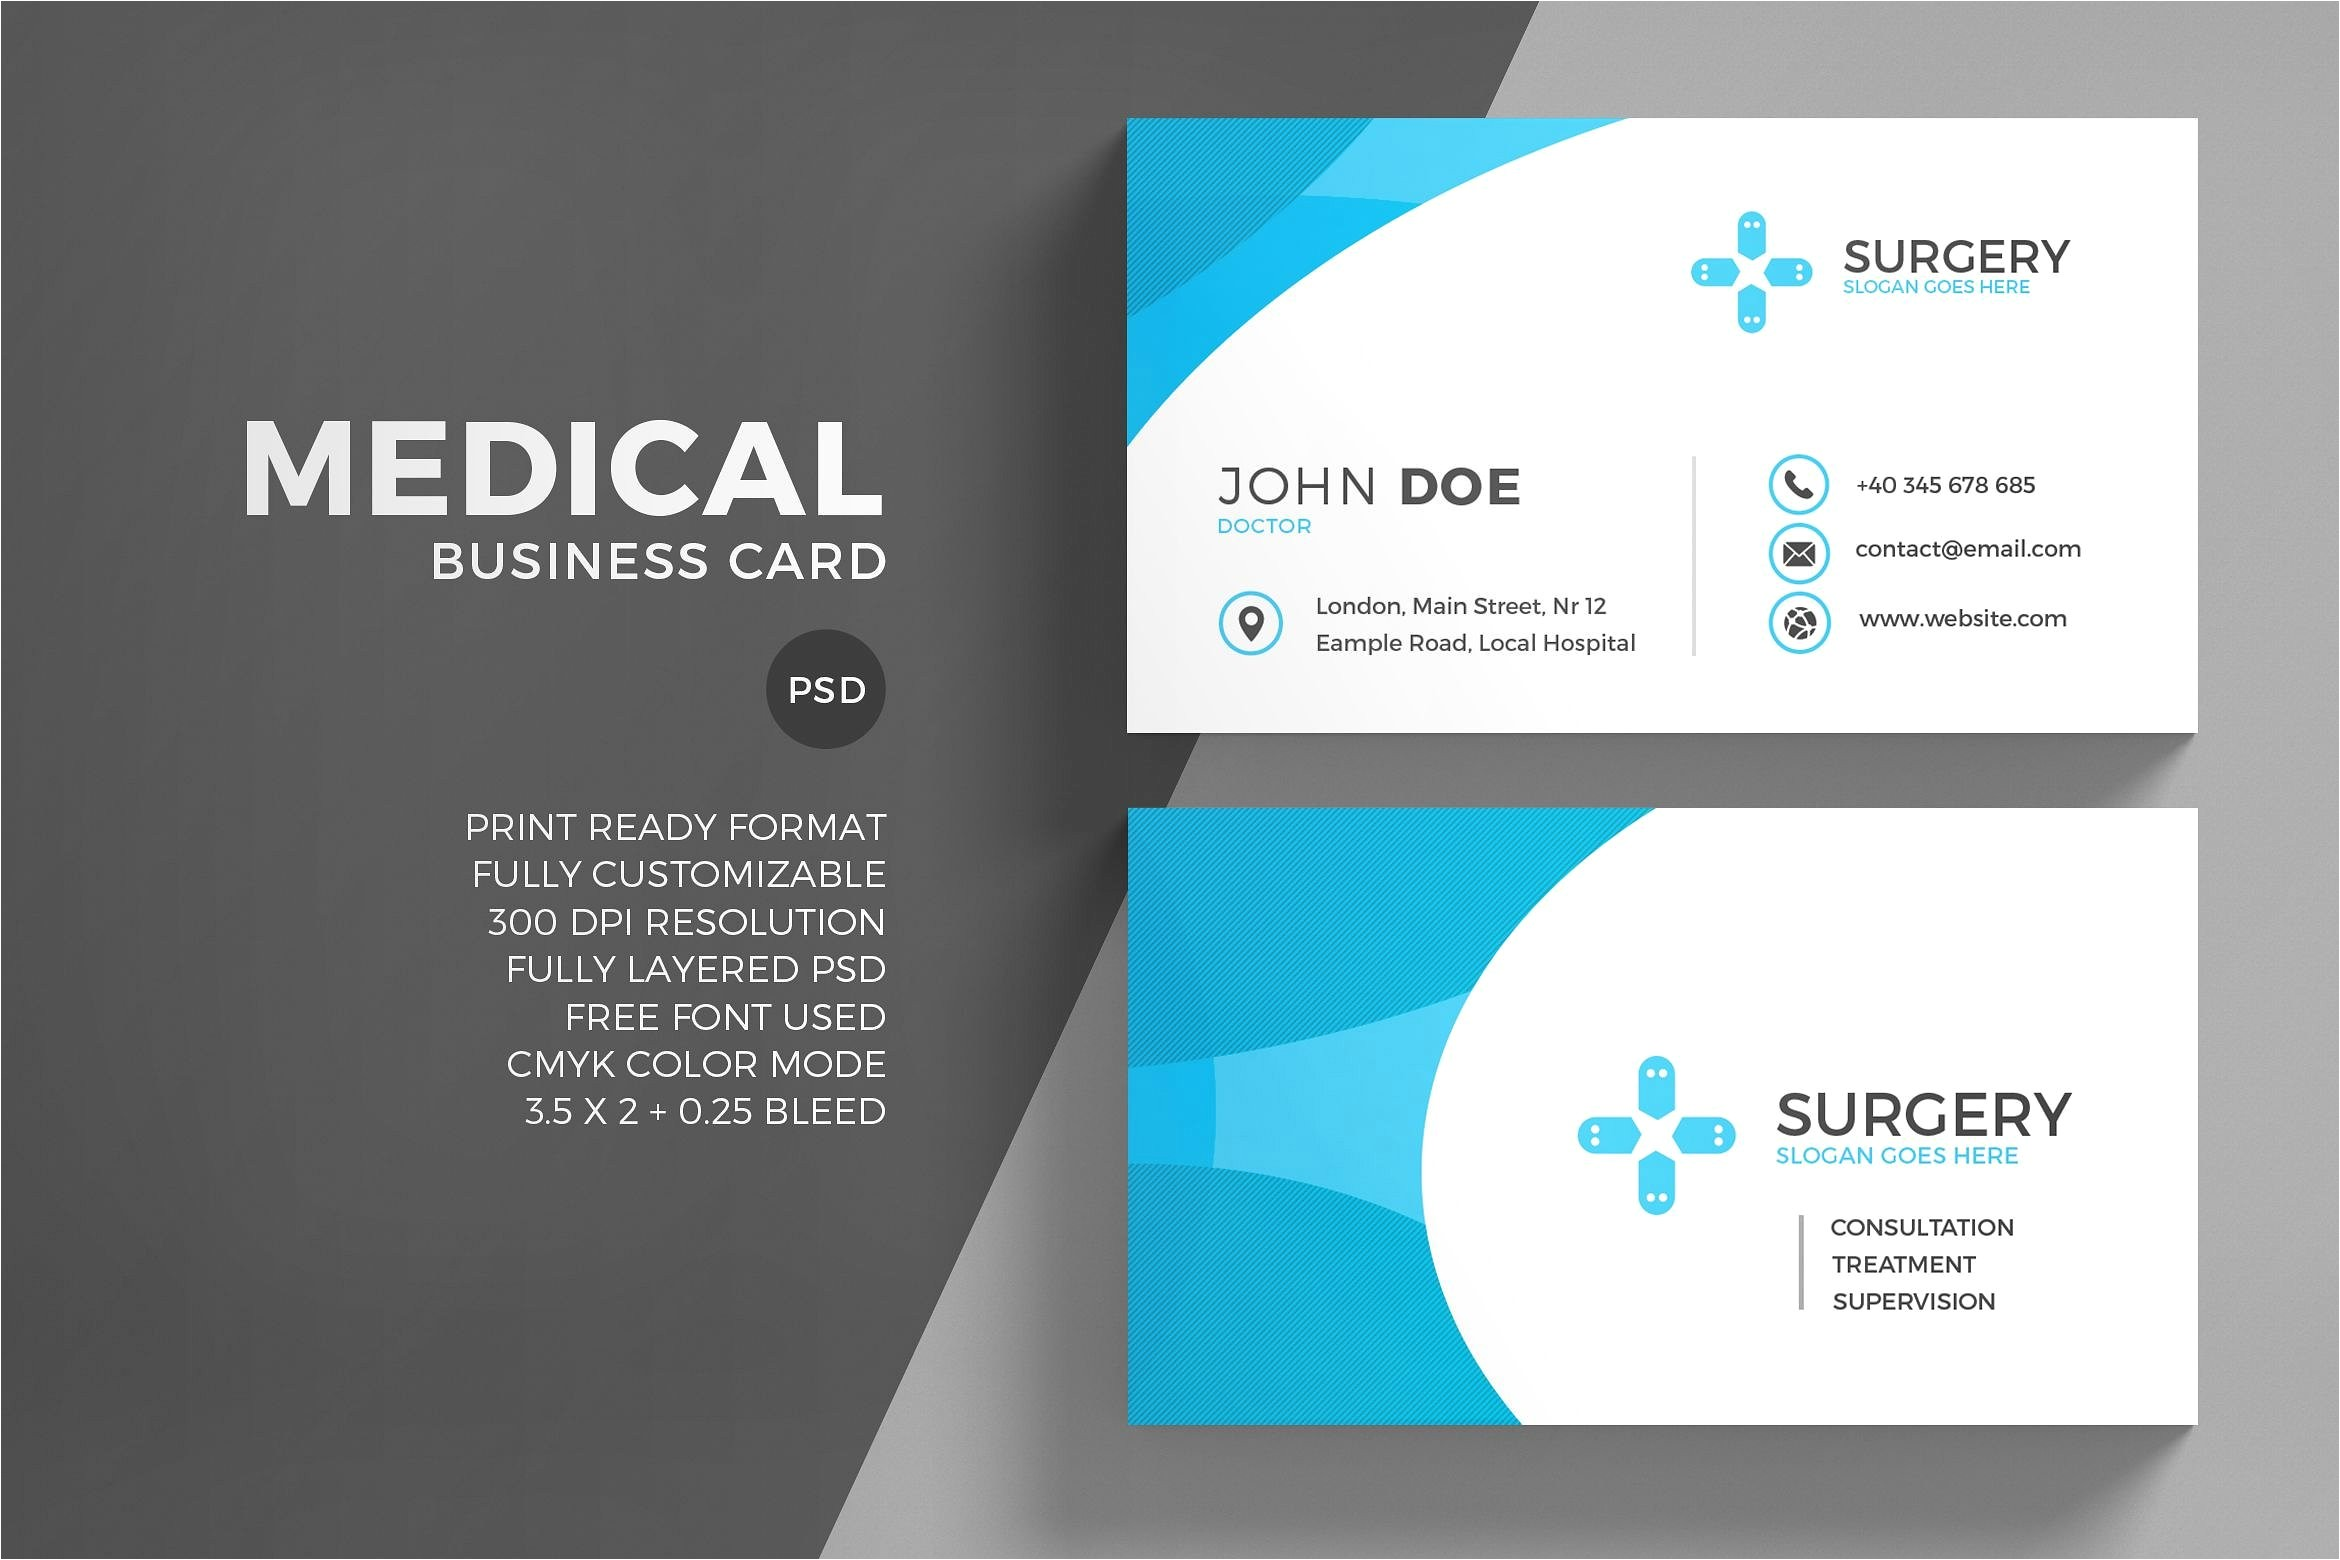 Free Medical Business Card Templates Printable Free Medical Business Card Psd Image Collections Card